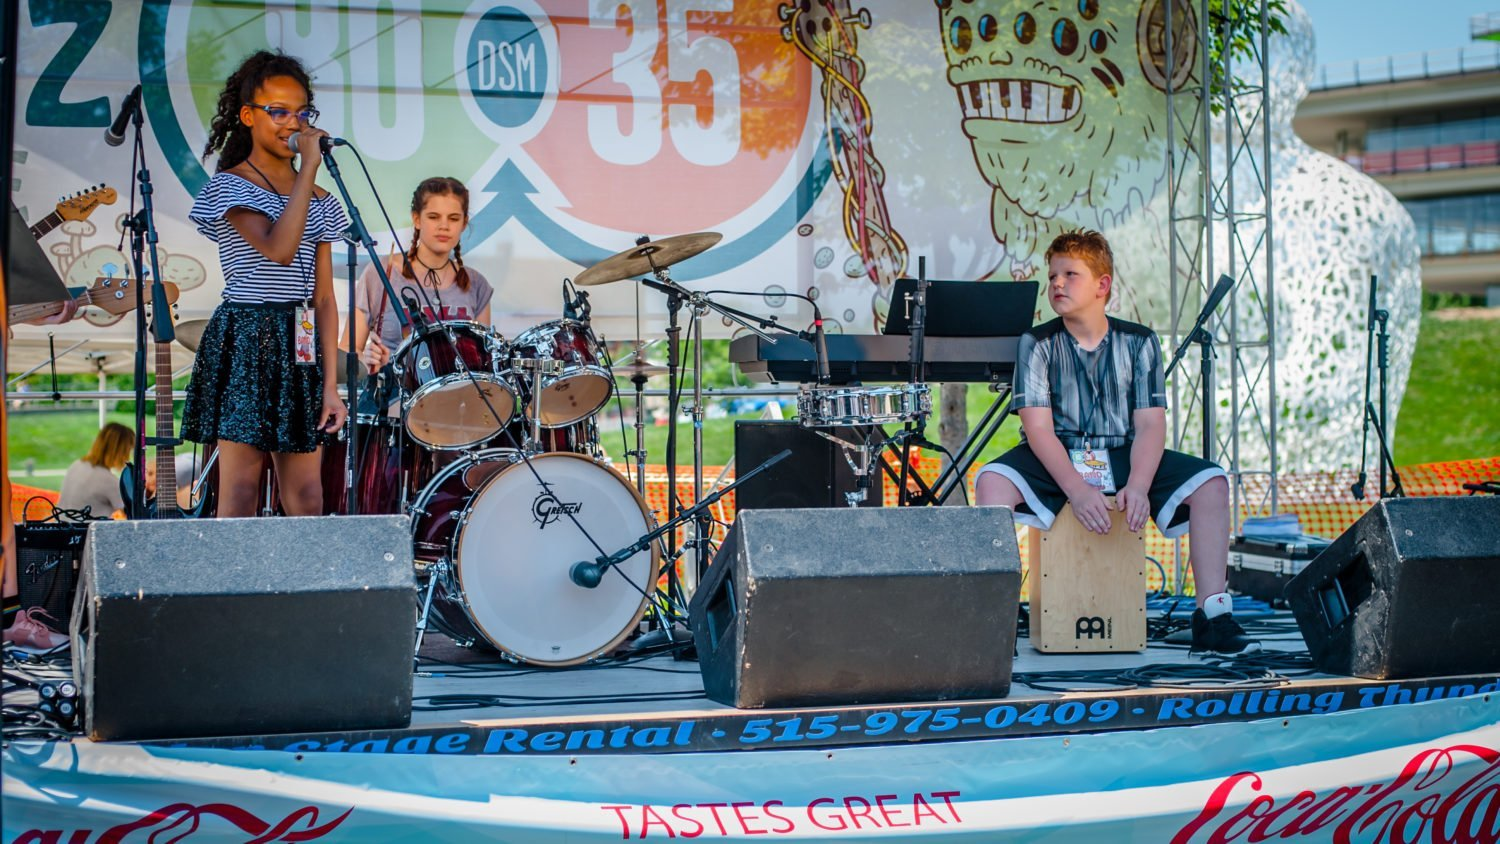 Summer Camp Rock performing at 80/35 Music Festival 2018 in Des Moines, Iowa